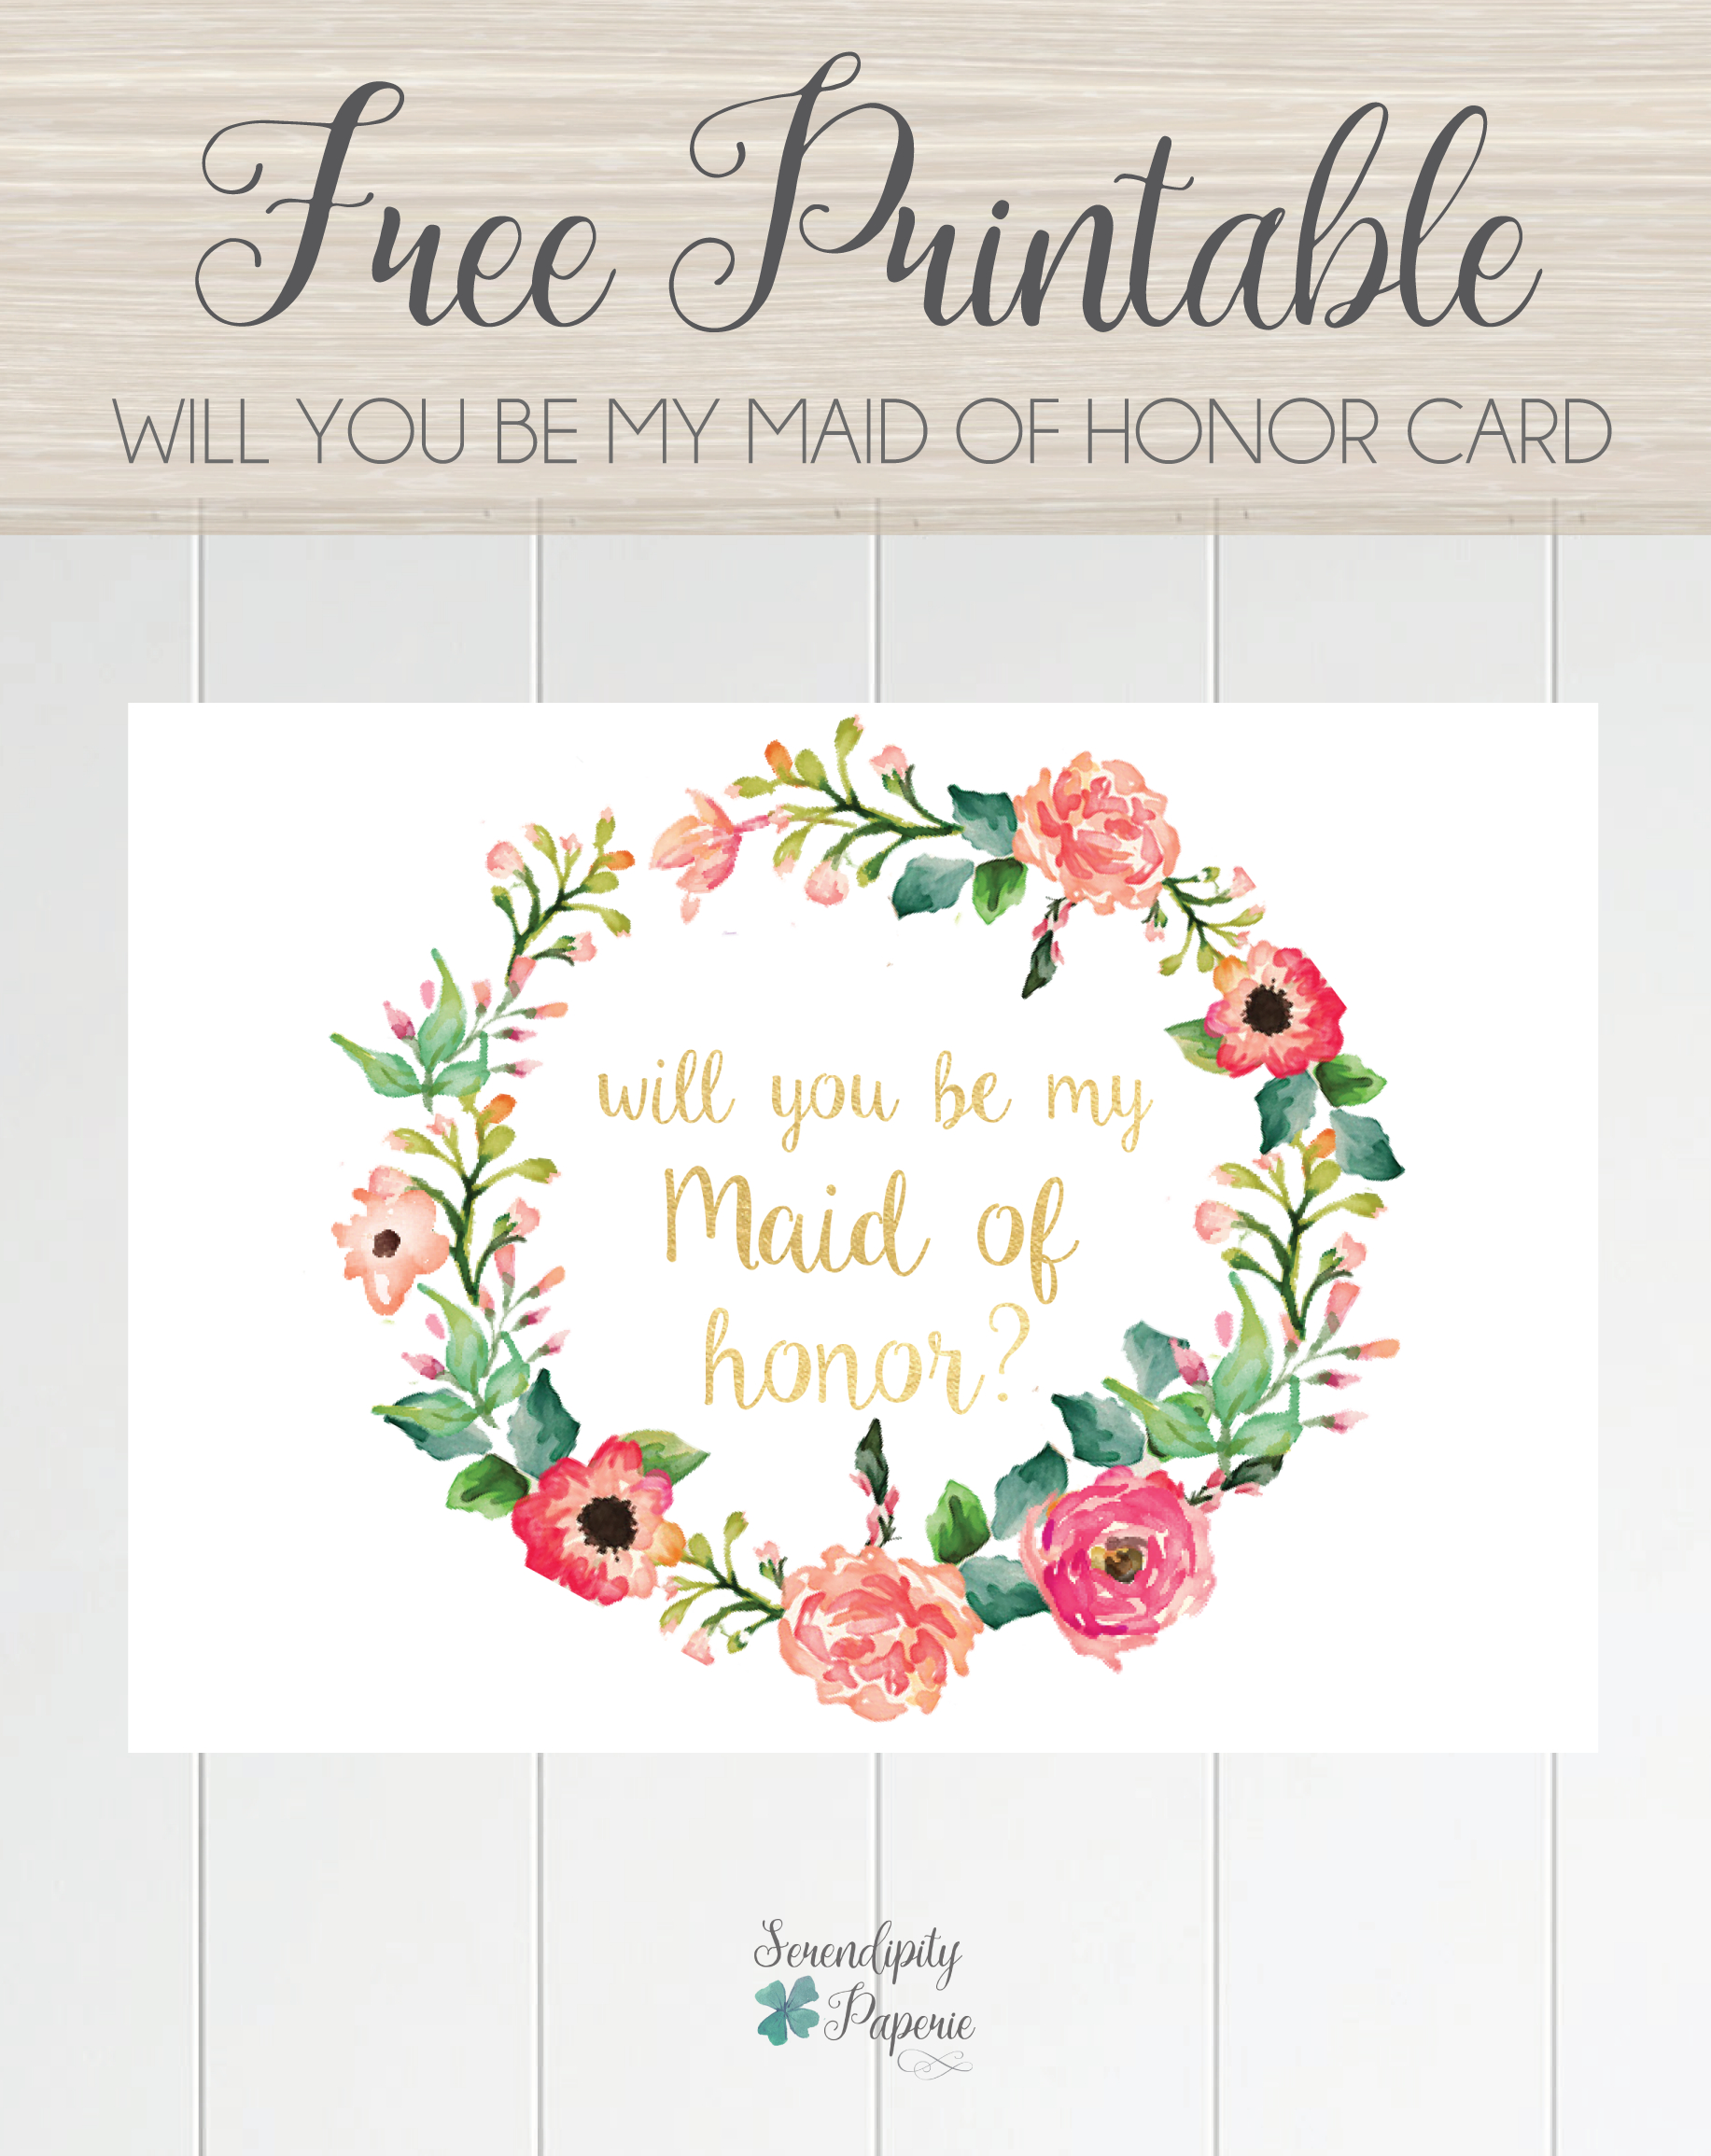 Free Printable Will You Be My Maid Of Honor Card, Floral Wreath - Free Printable Will You Be My Maid Of Honor Card